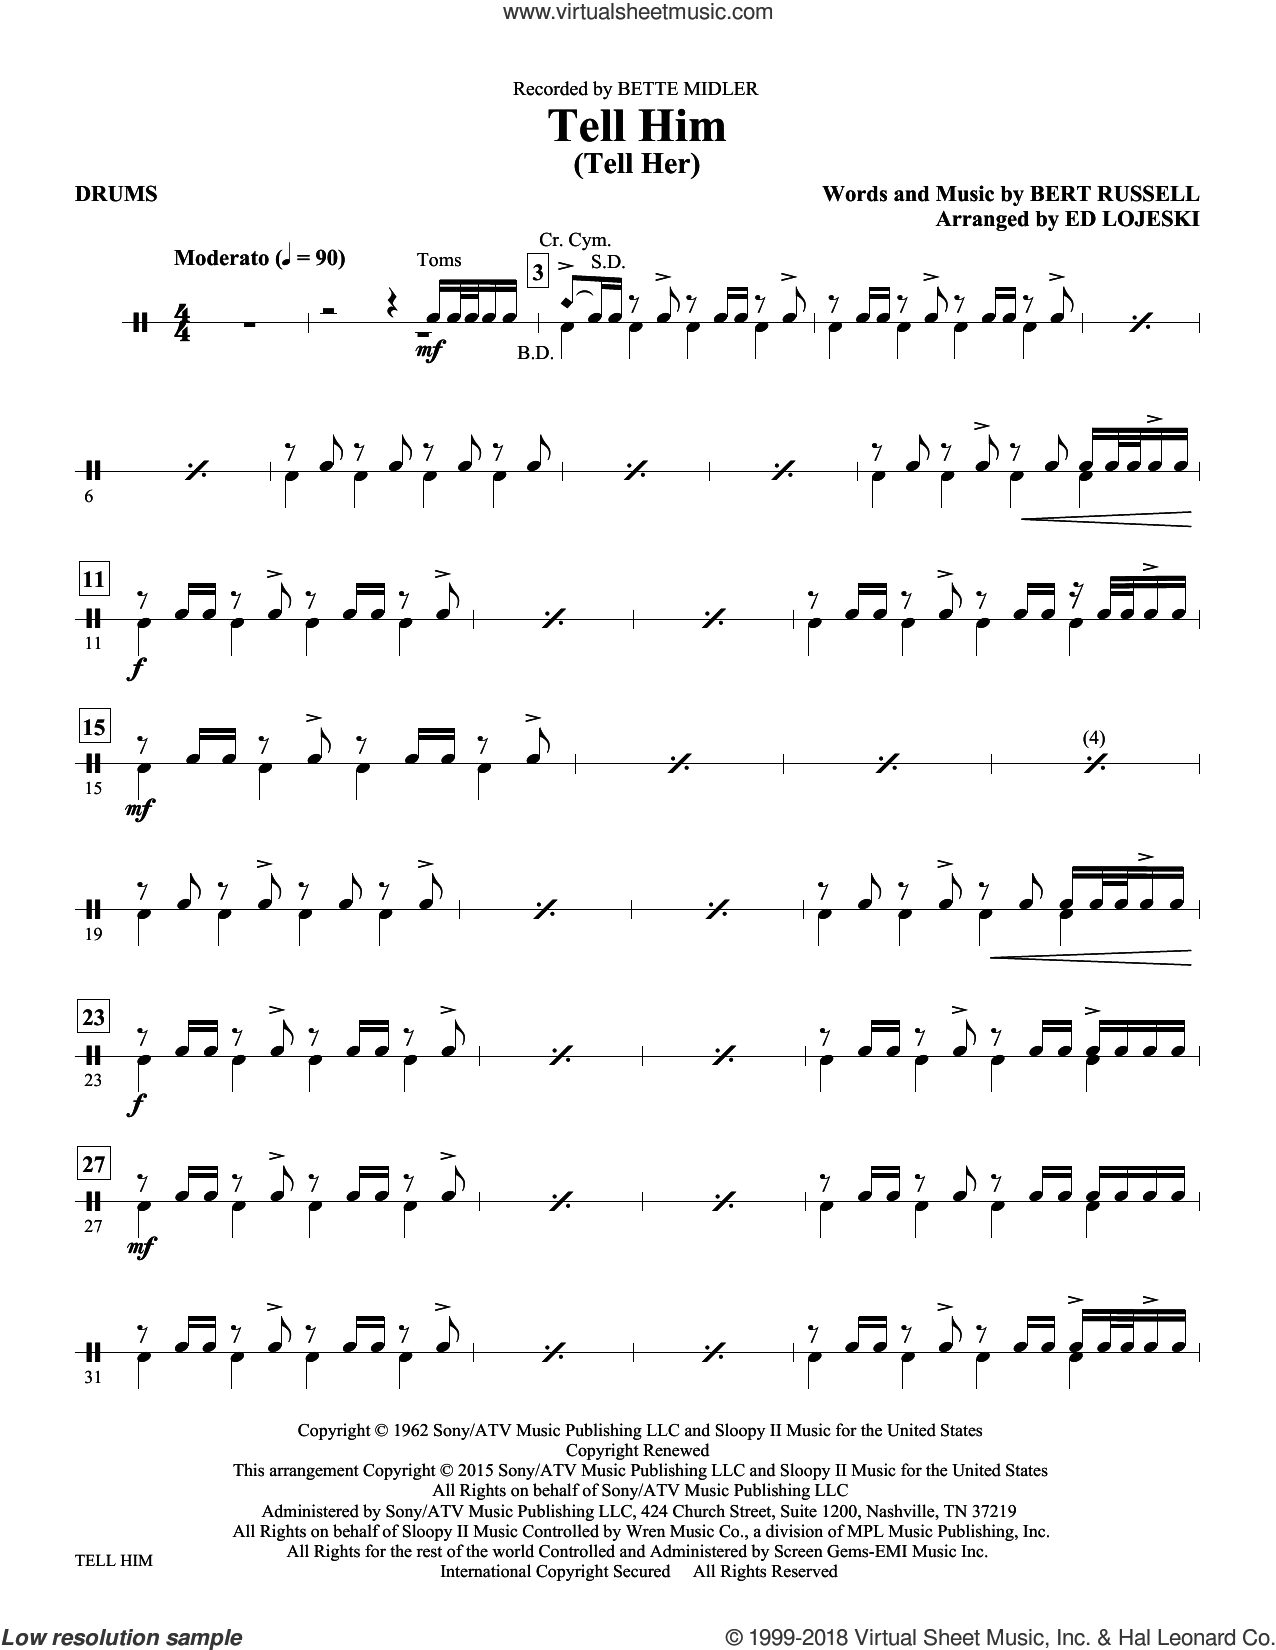 Tell Him (Tell Her) sheet music for orchestra/band (drums) by Bert Russell and Ed Lojeski. Score Image Preview.